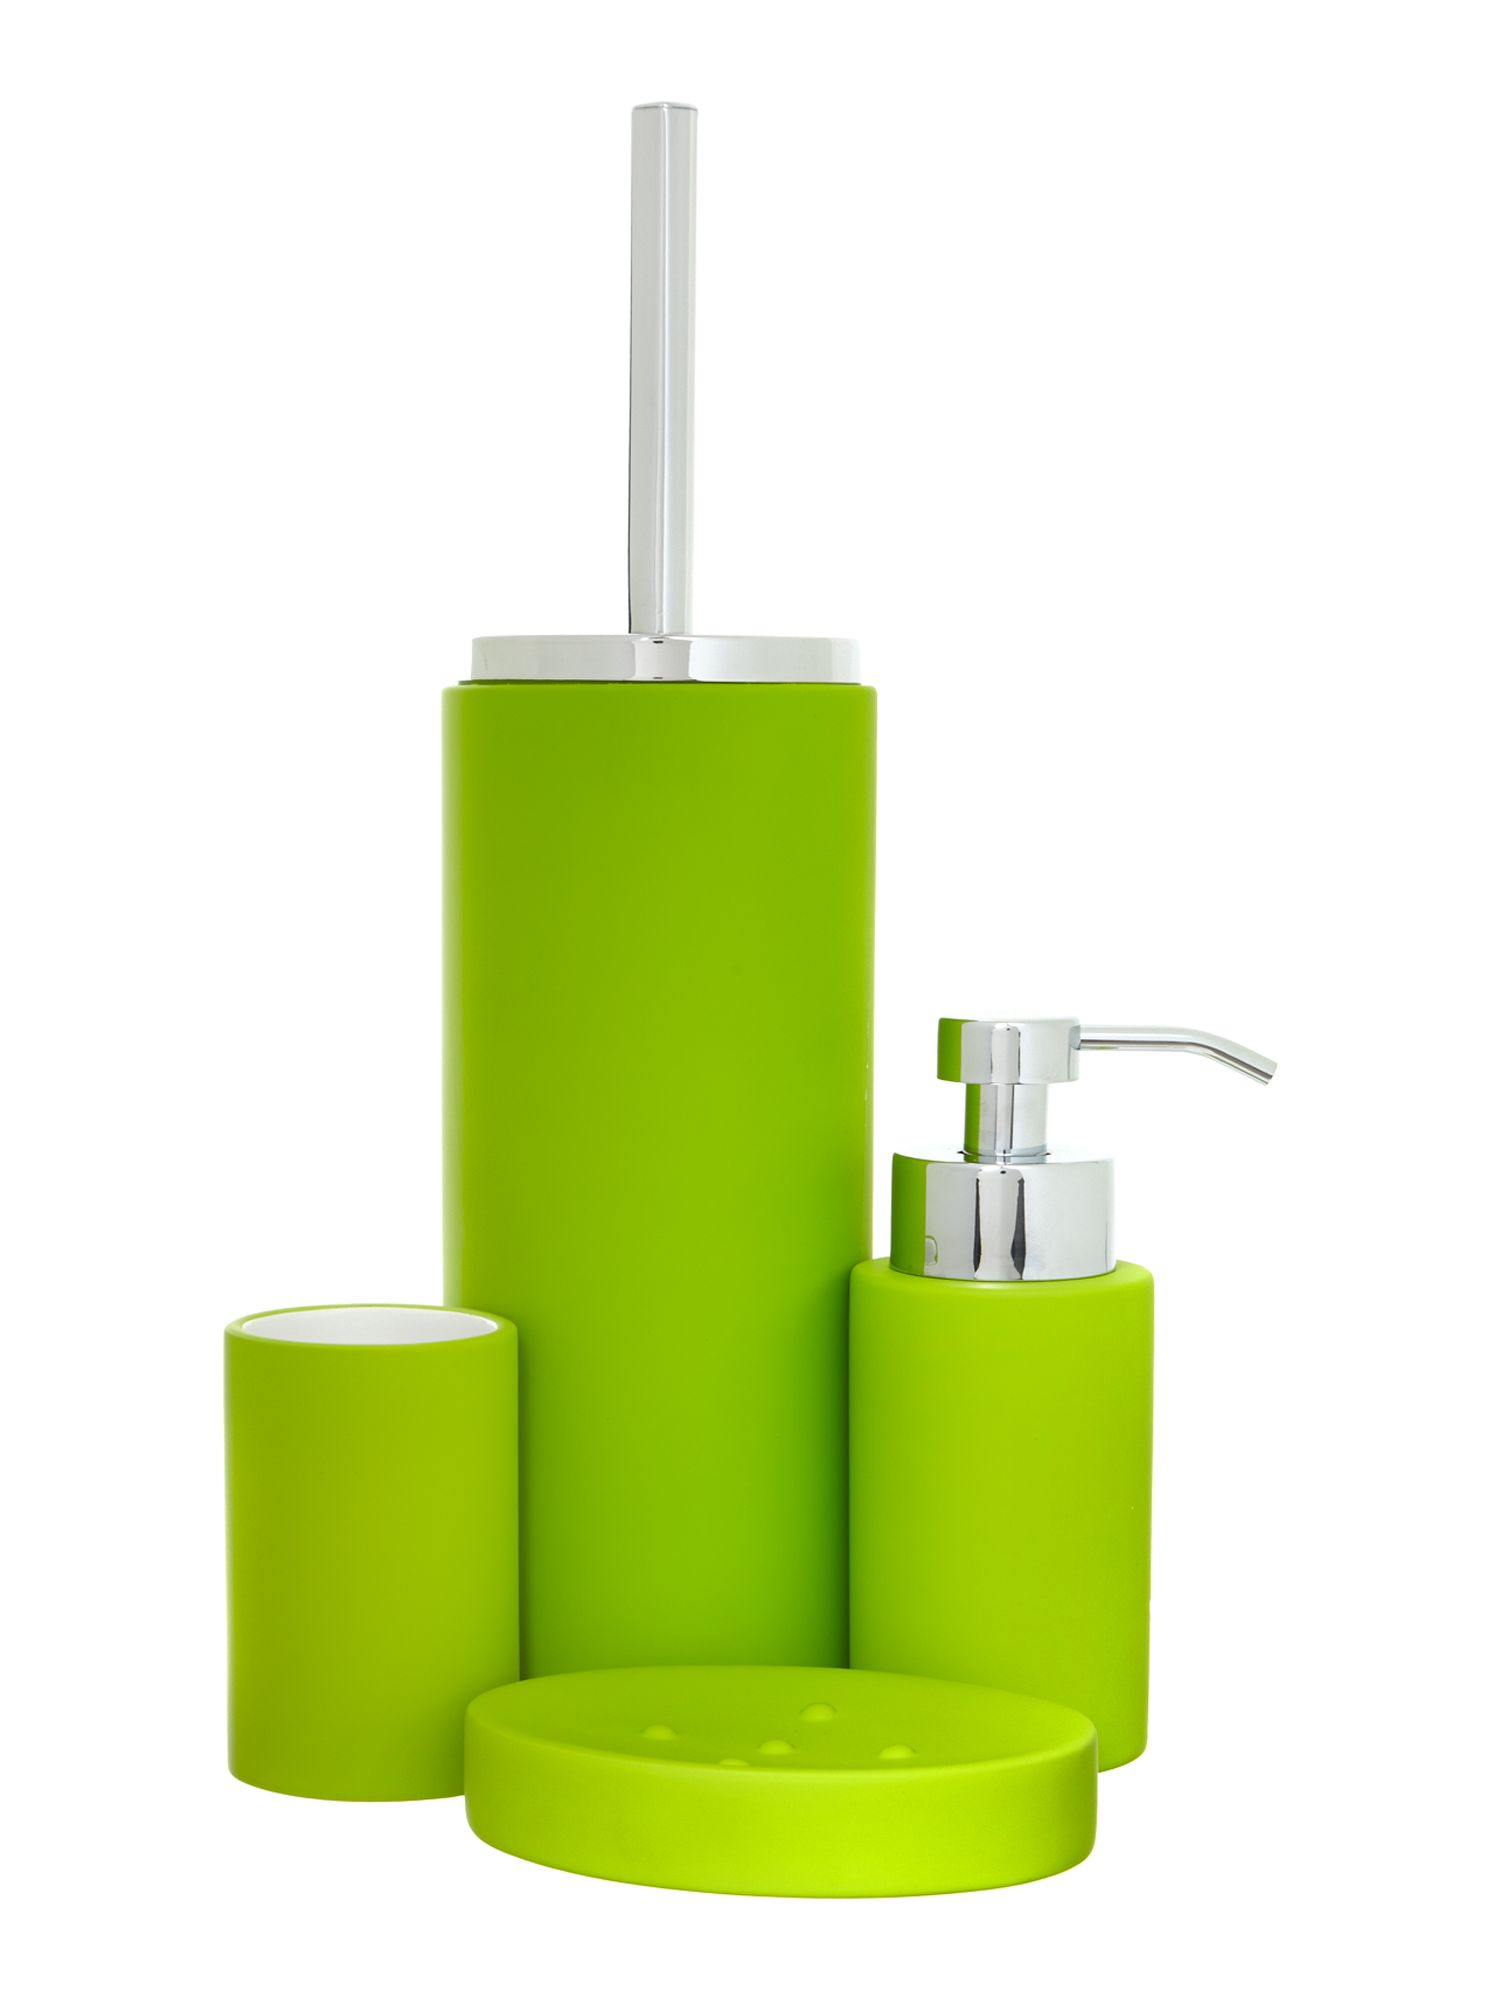 Bathroom Accessories Lime Green Home Design